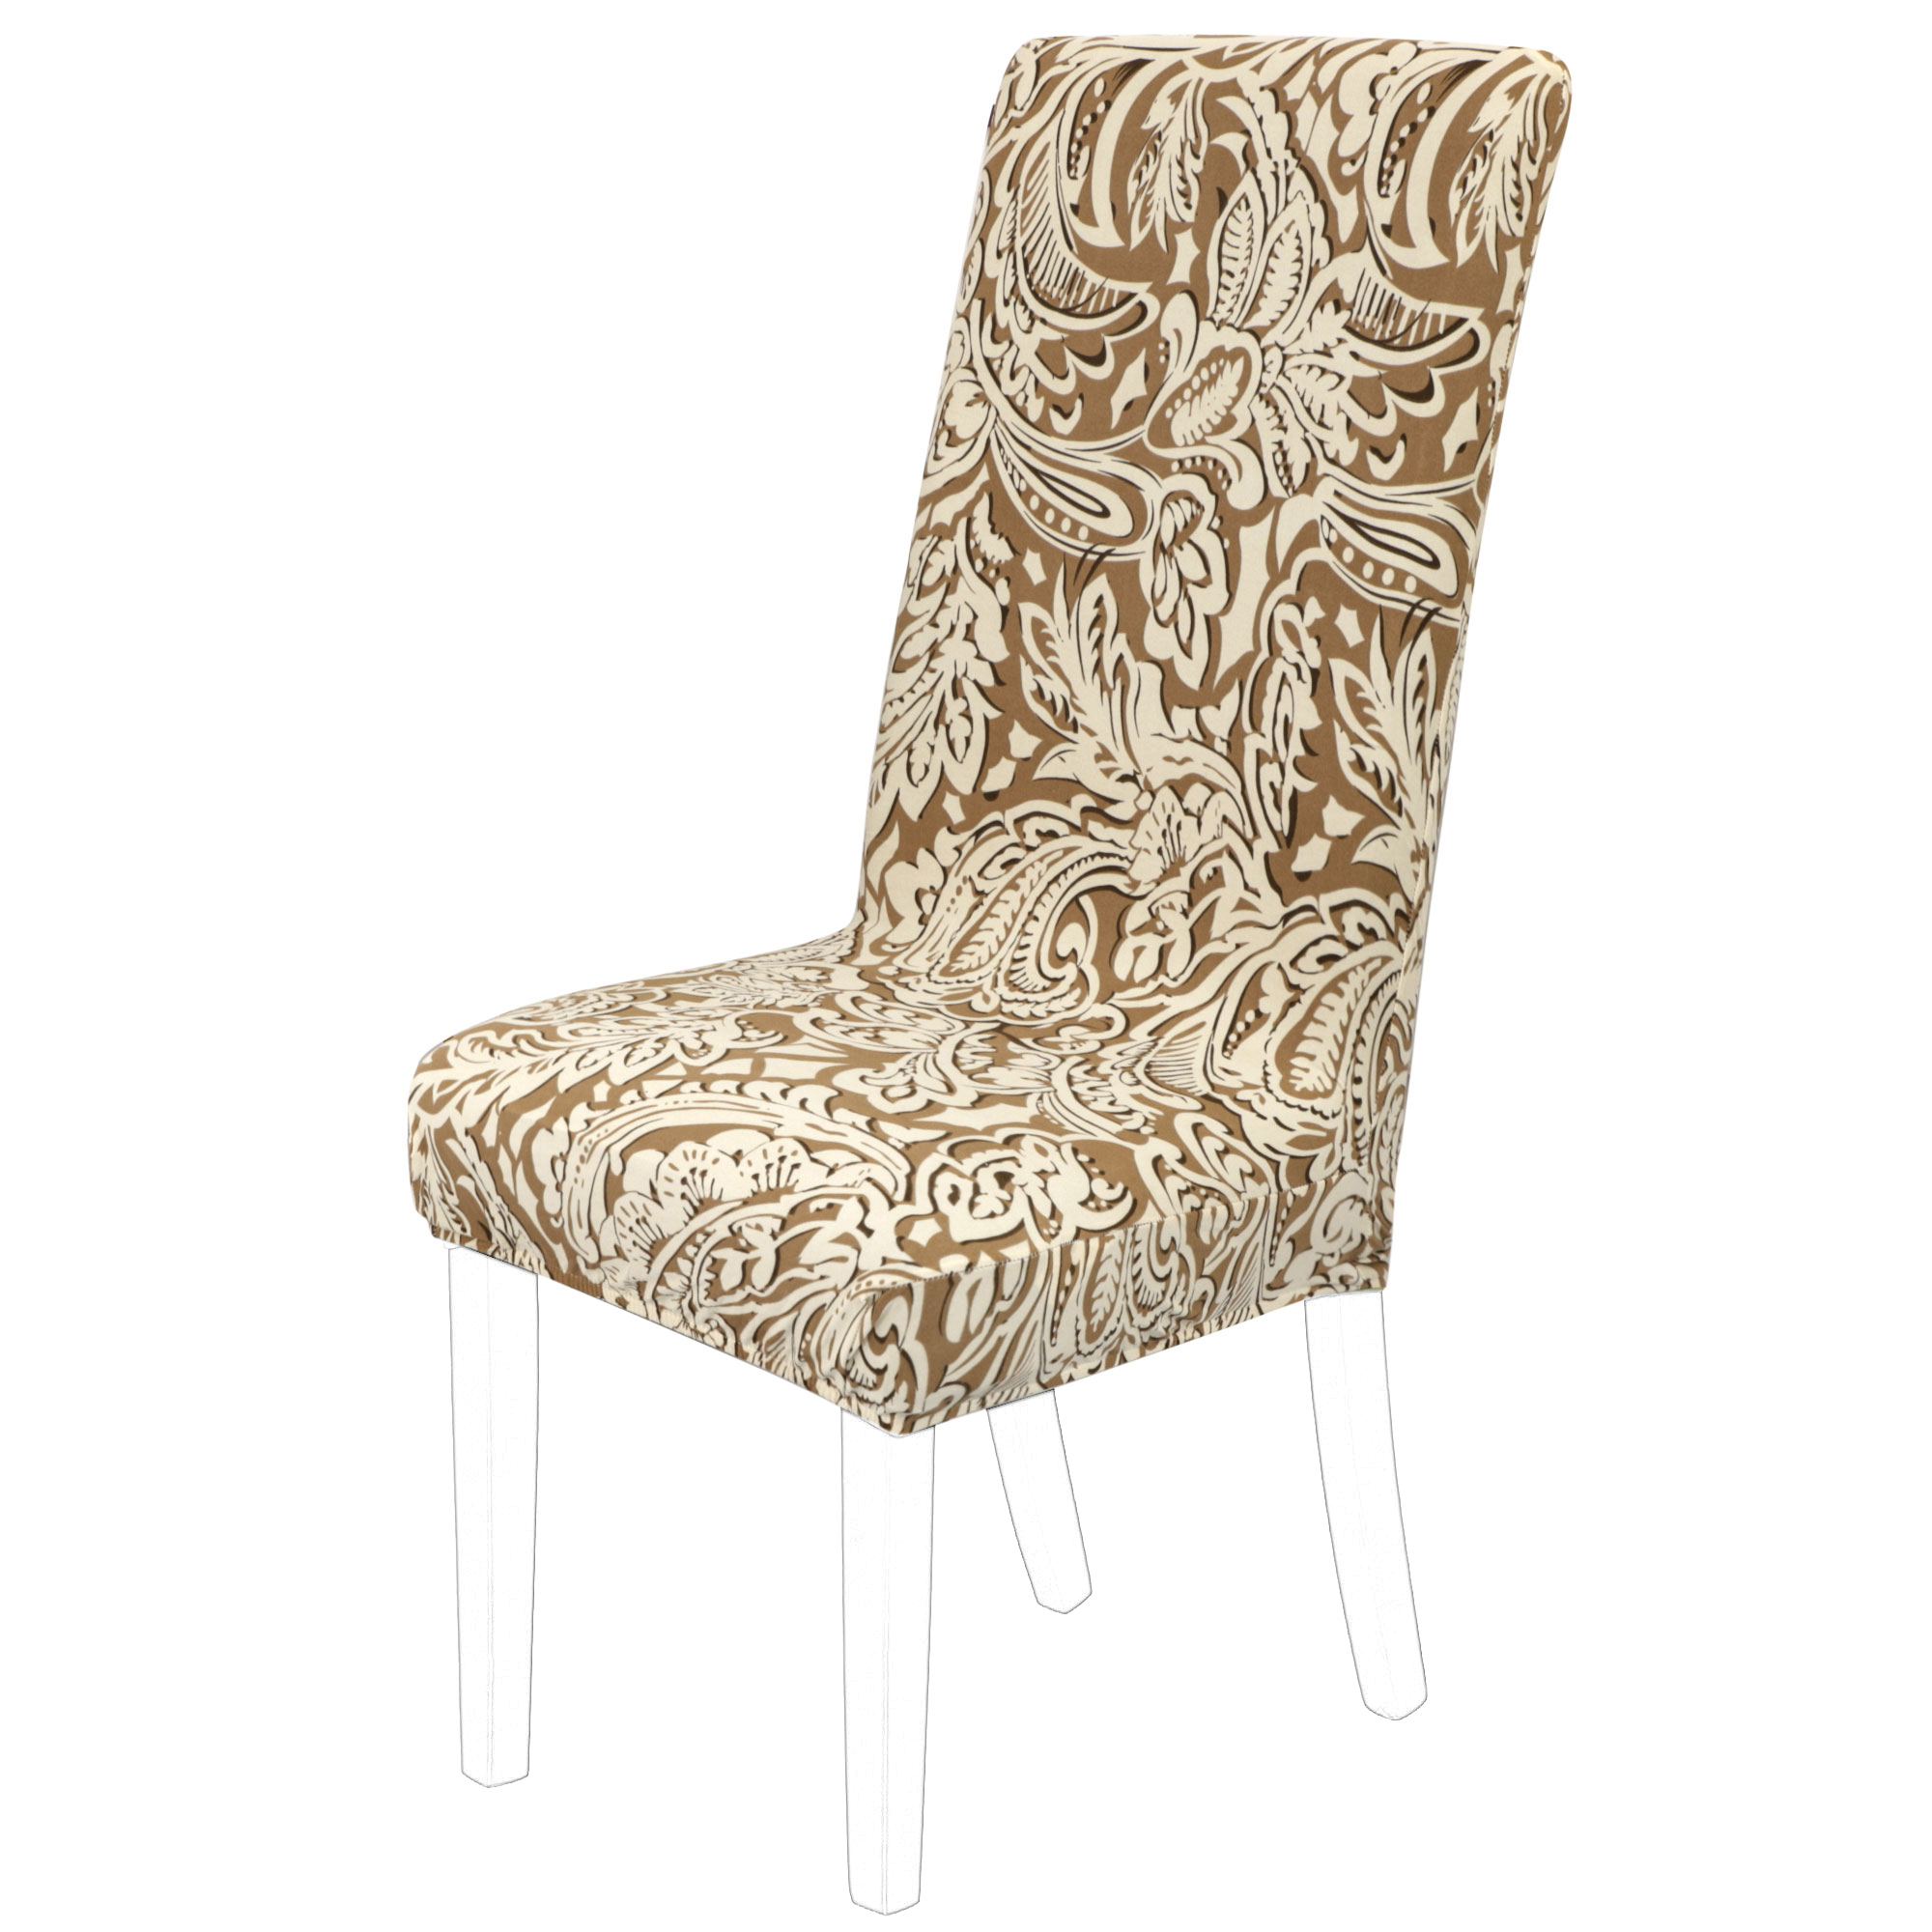 Removable Stretch Dining Chair Cover Protector Short Seat Slipcover for Wedding Hotel Banquet Home, #8